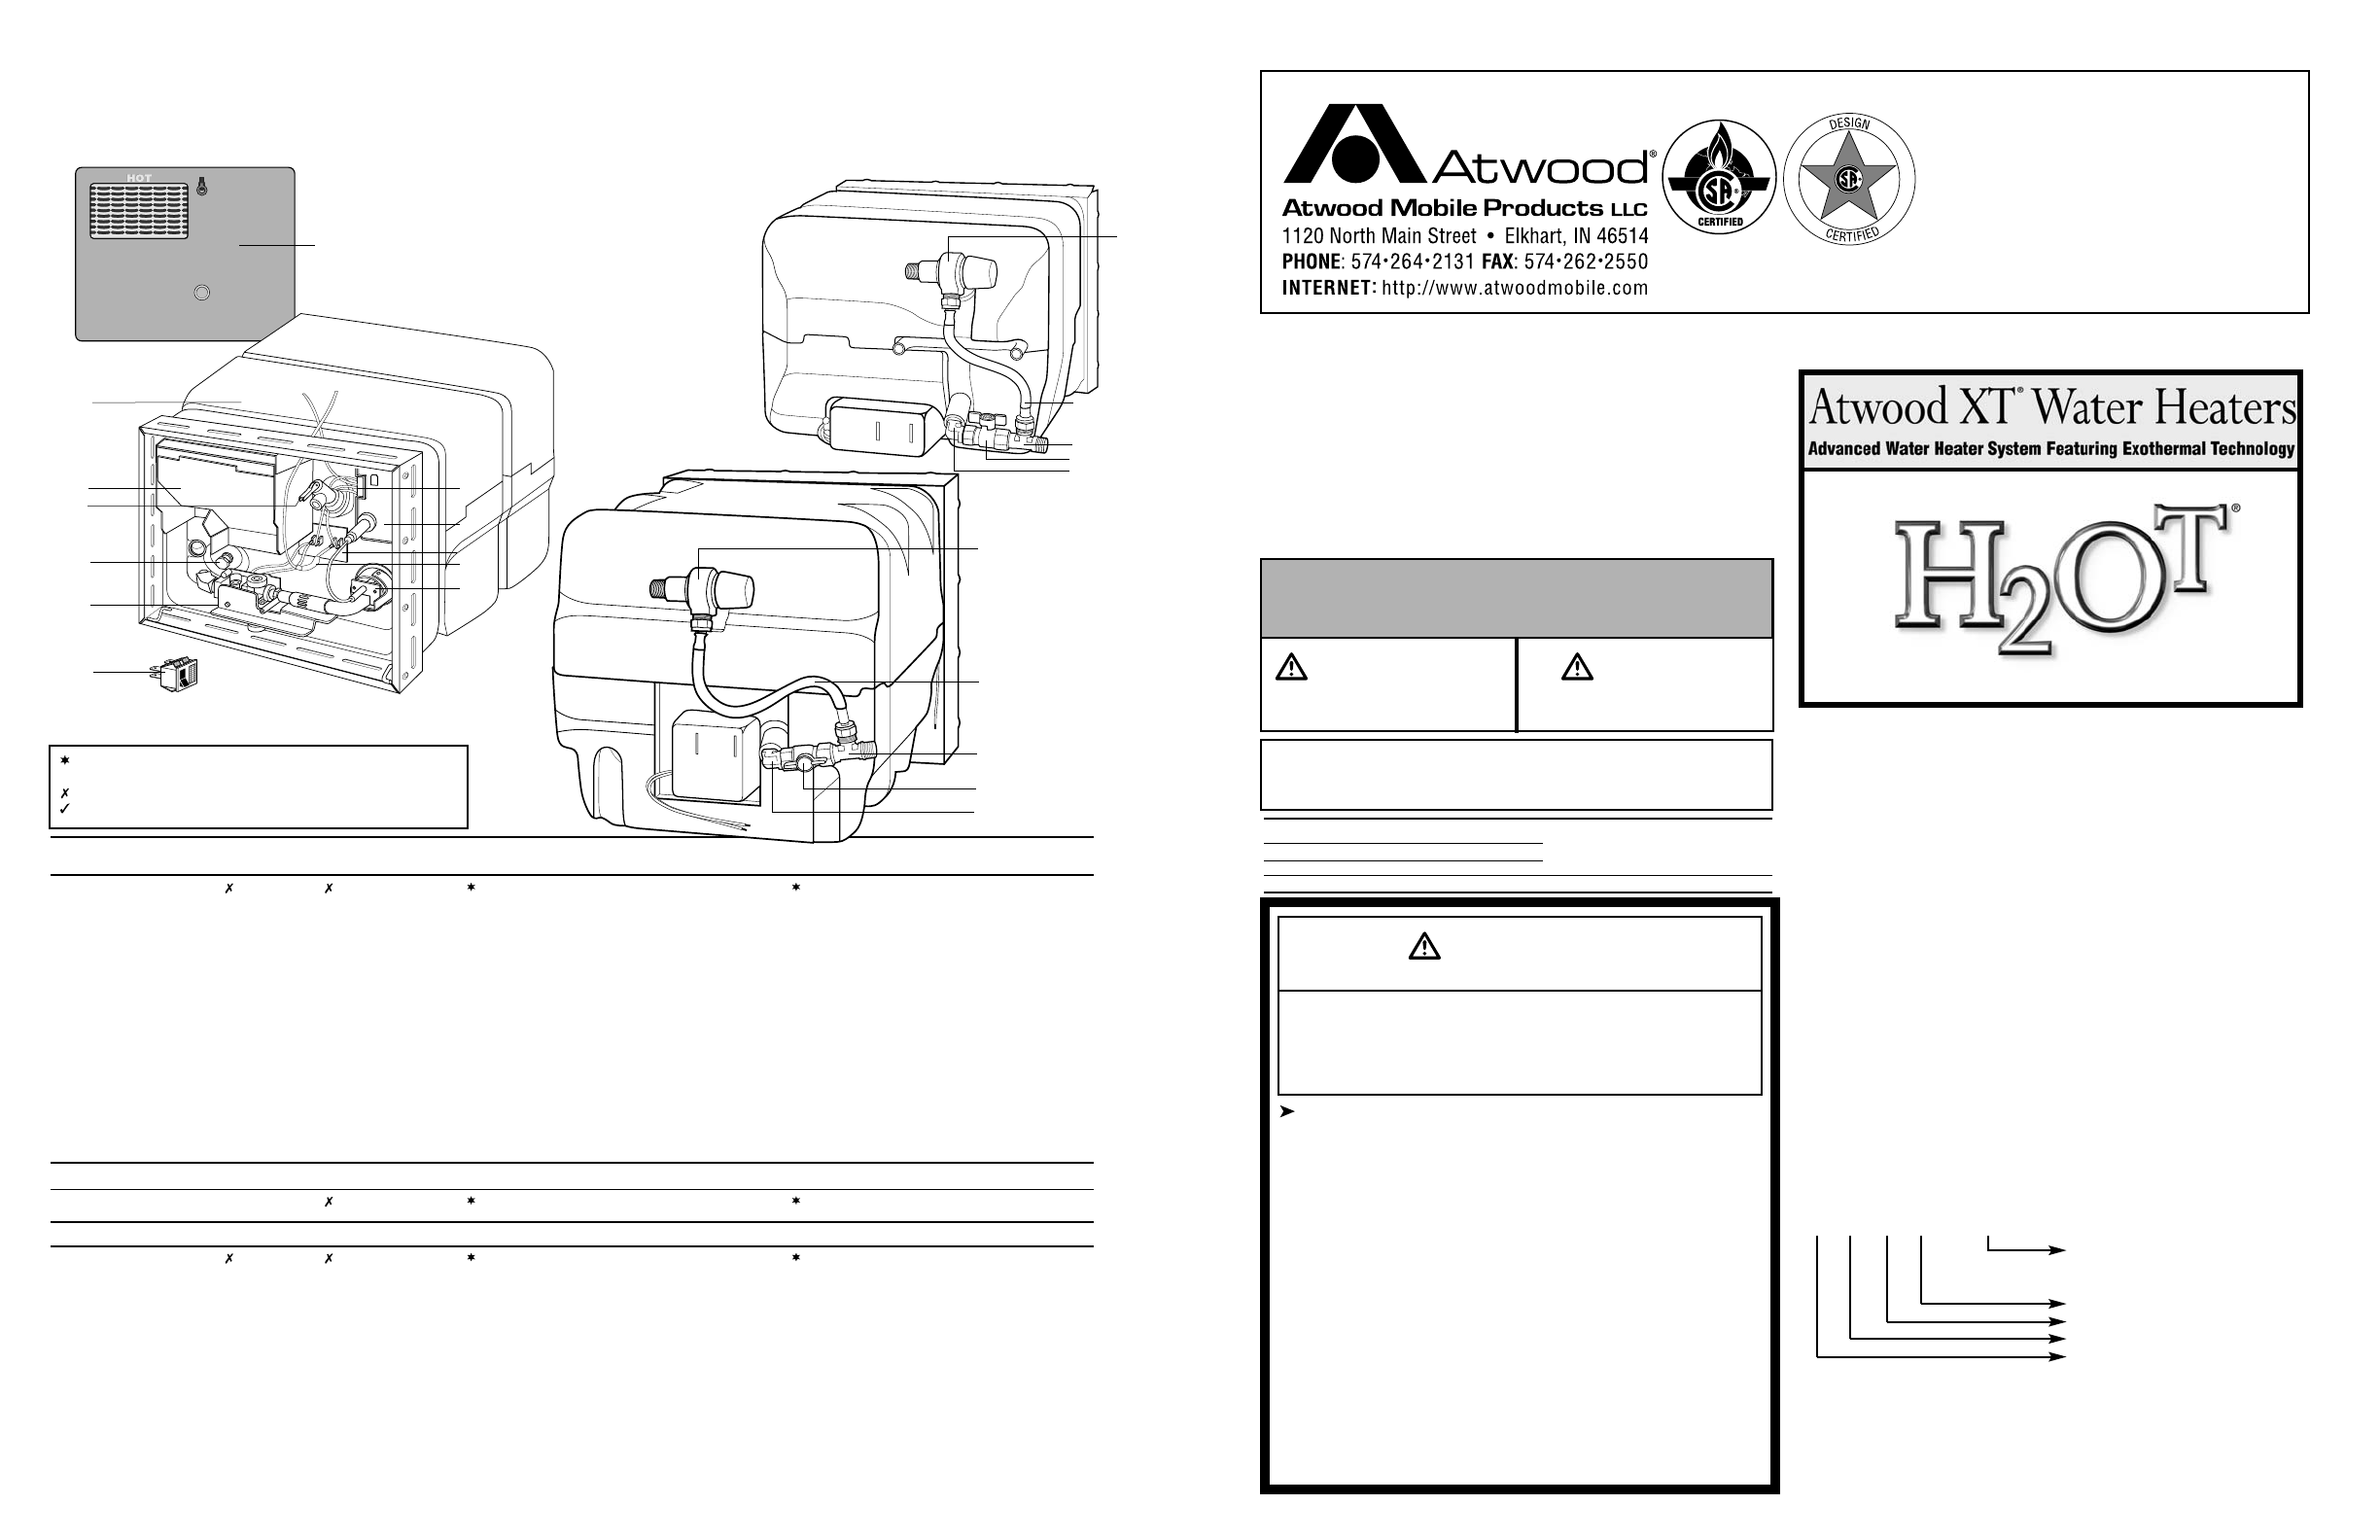 Page 8 Of Atwood Mobile Products Water Heater Ge16ext User Manual Guide